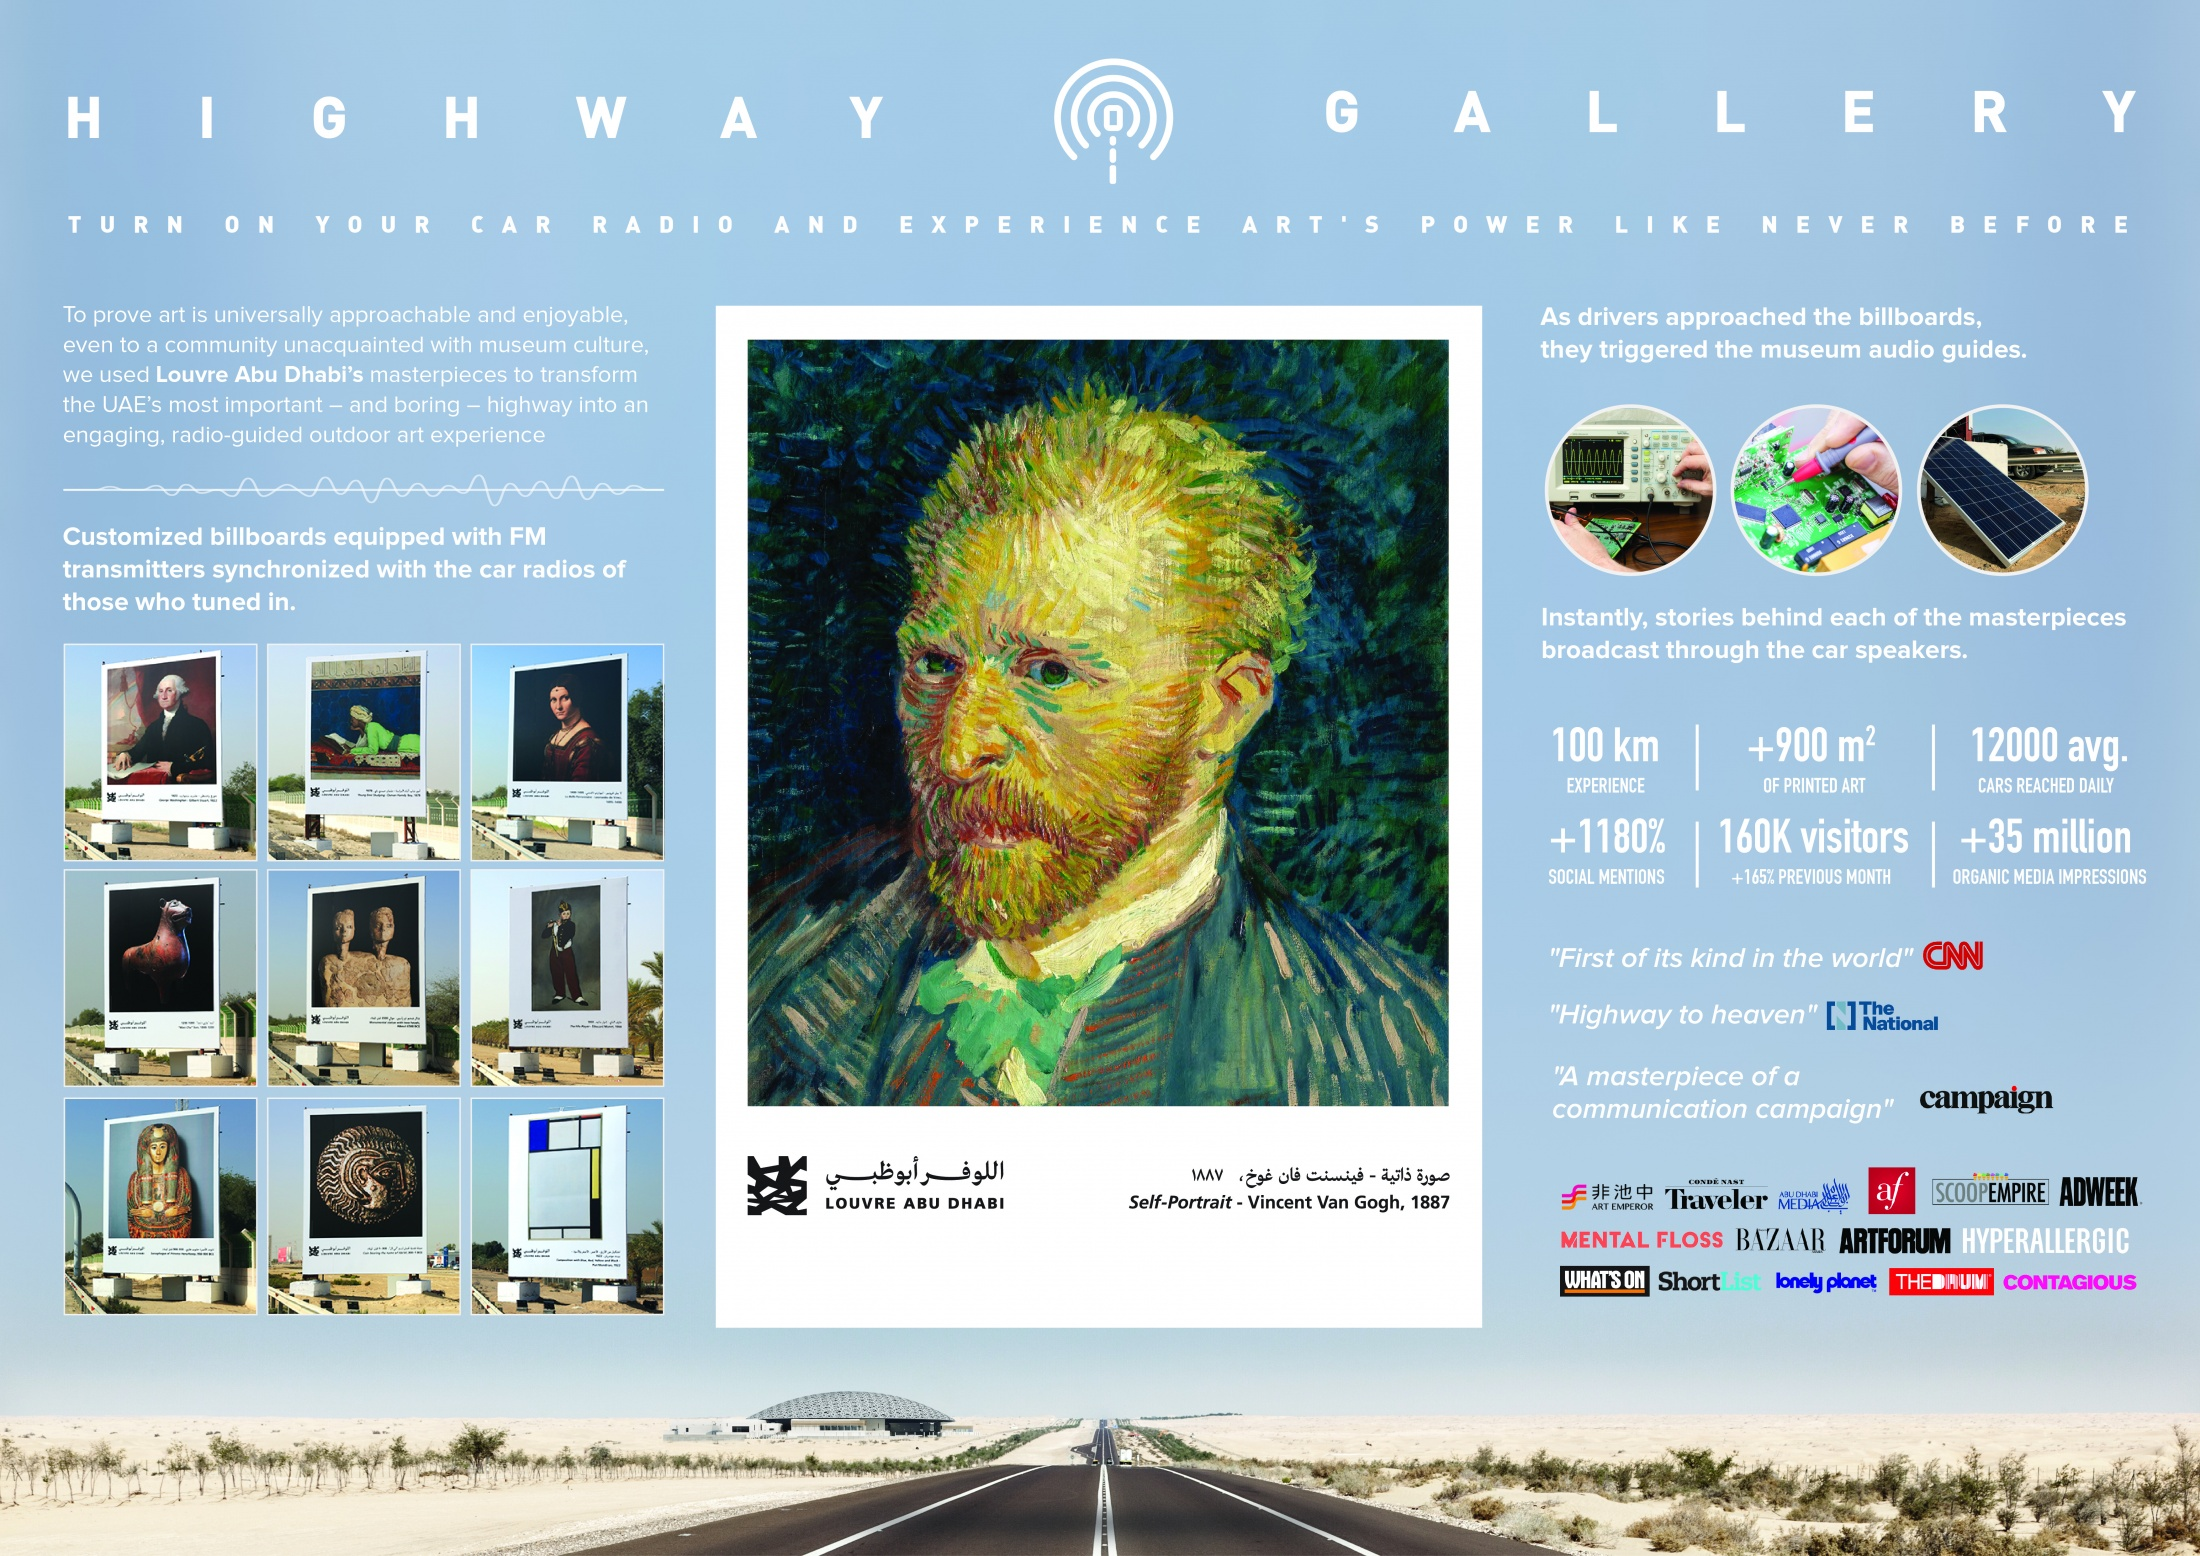 Thumbnail for Highway Gallery